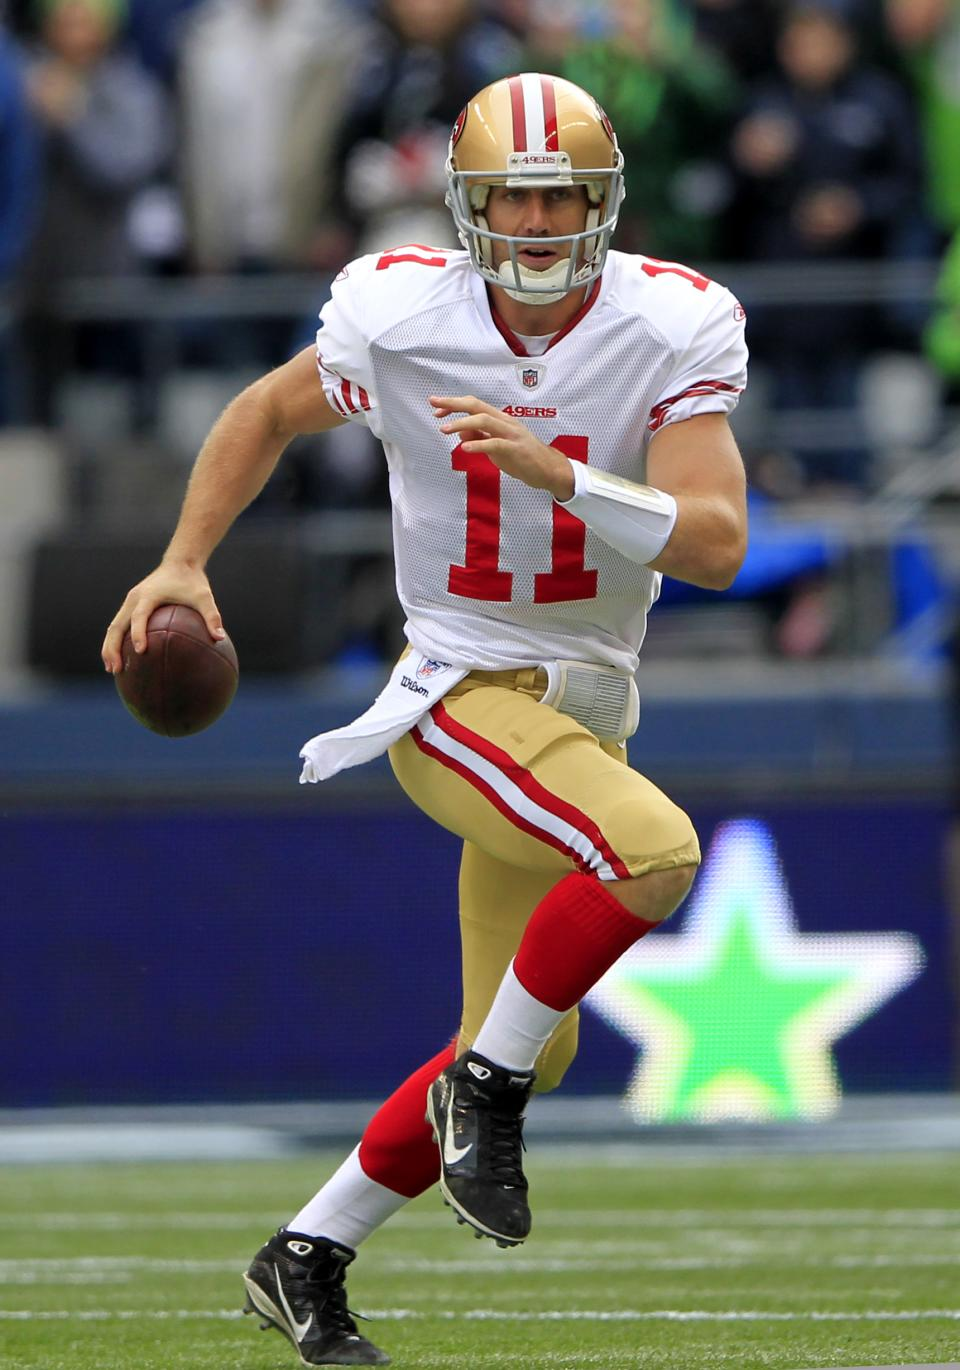 San Francisco 49ers'  Alex Smith scrambles against the Seattle Seahawks in the first half of an NFL football game Saturday, Dec. 24, 2011. (AP Photo/John Froschauer)